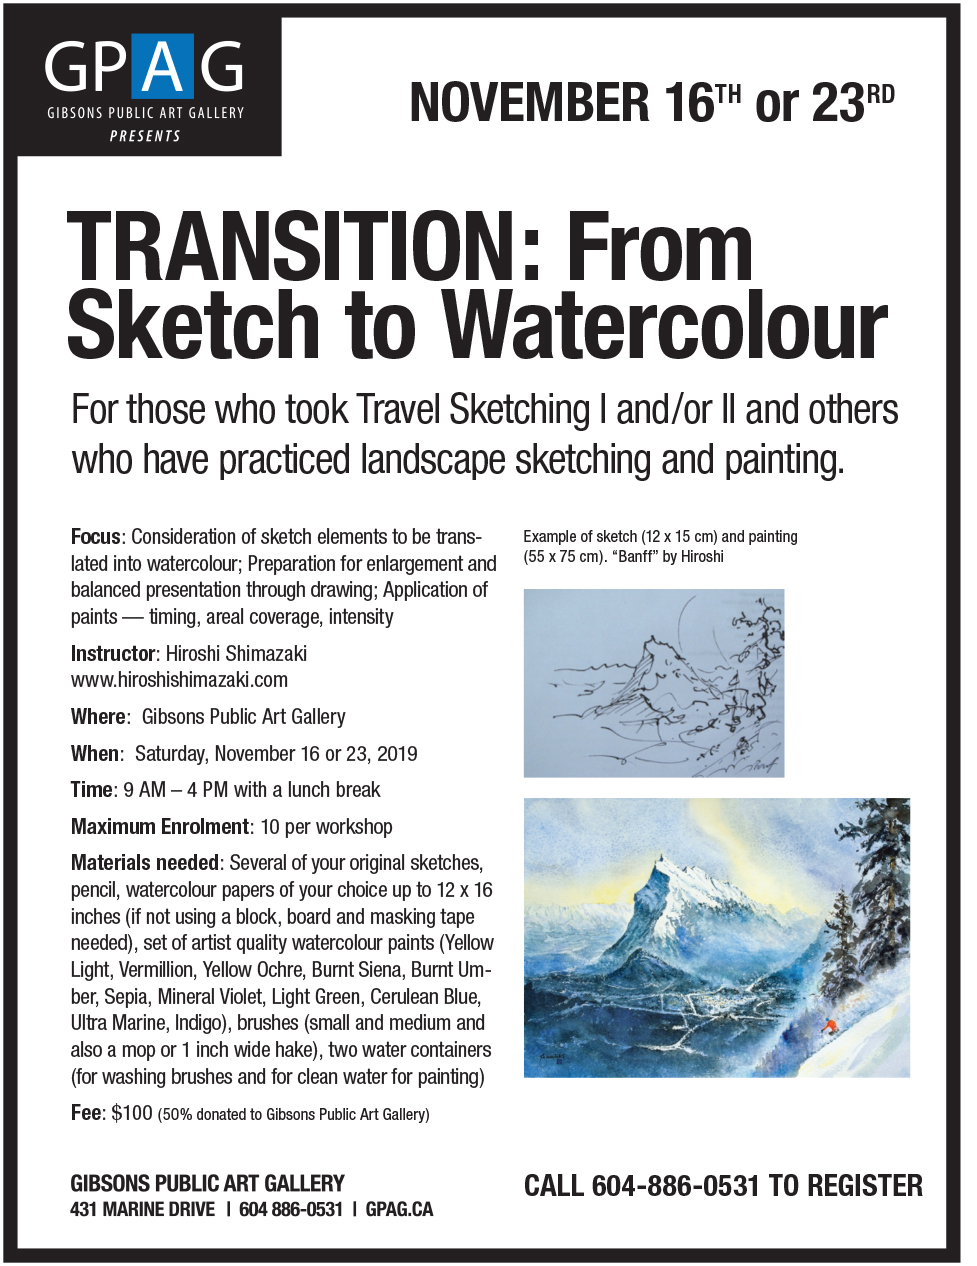 Transition: From Sketch to Watercolour